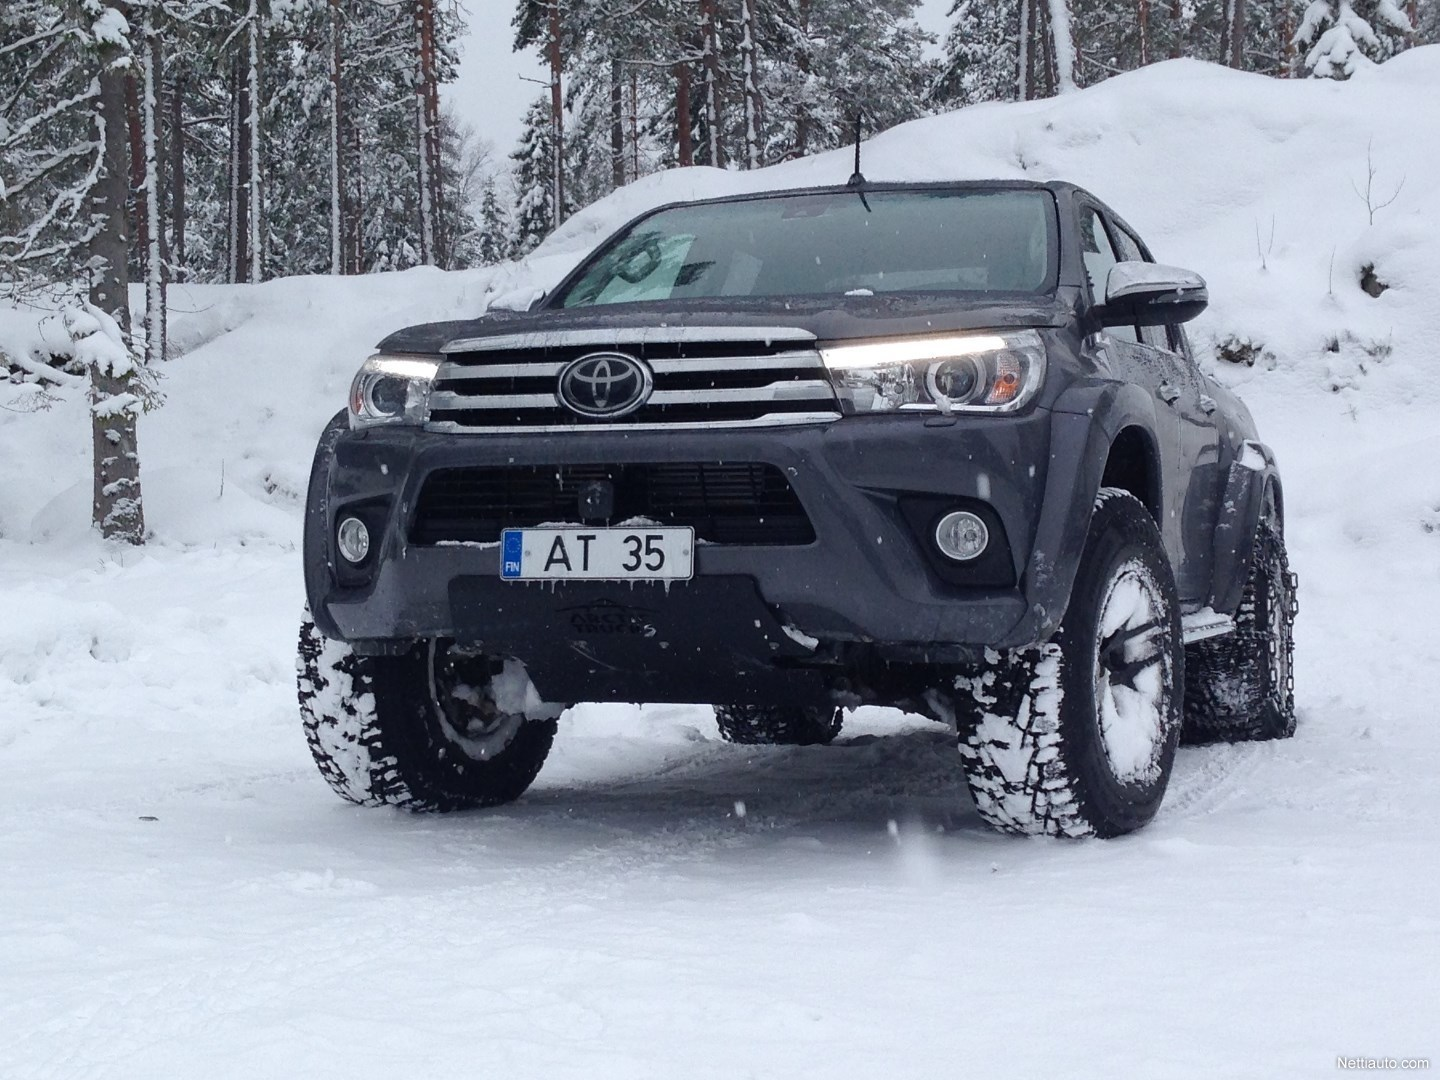 Toyota Hilux At35 Atm 4x4 2018 Used Vehicle Nettiauto